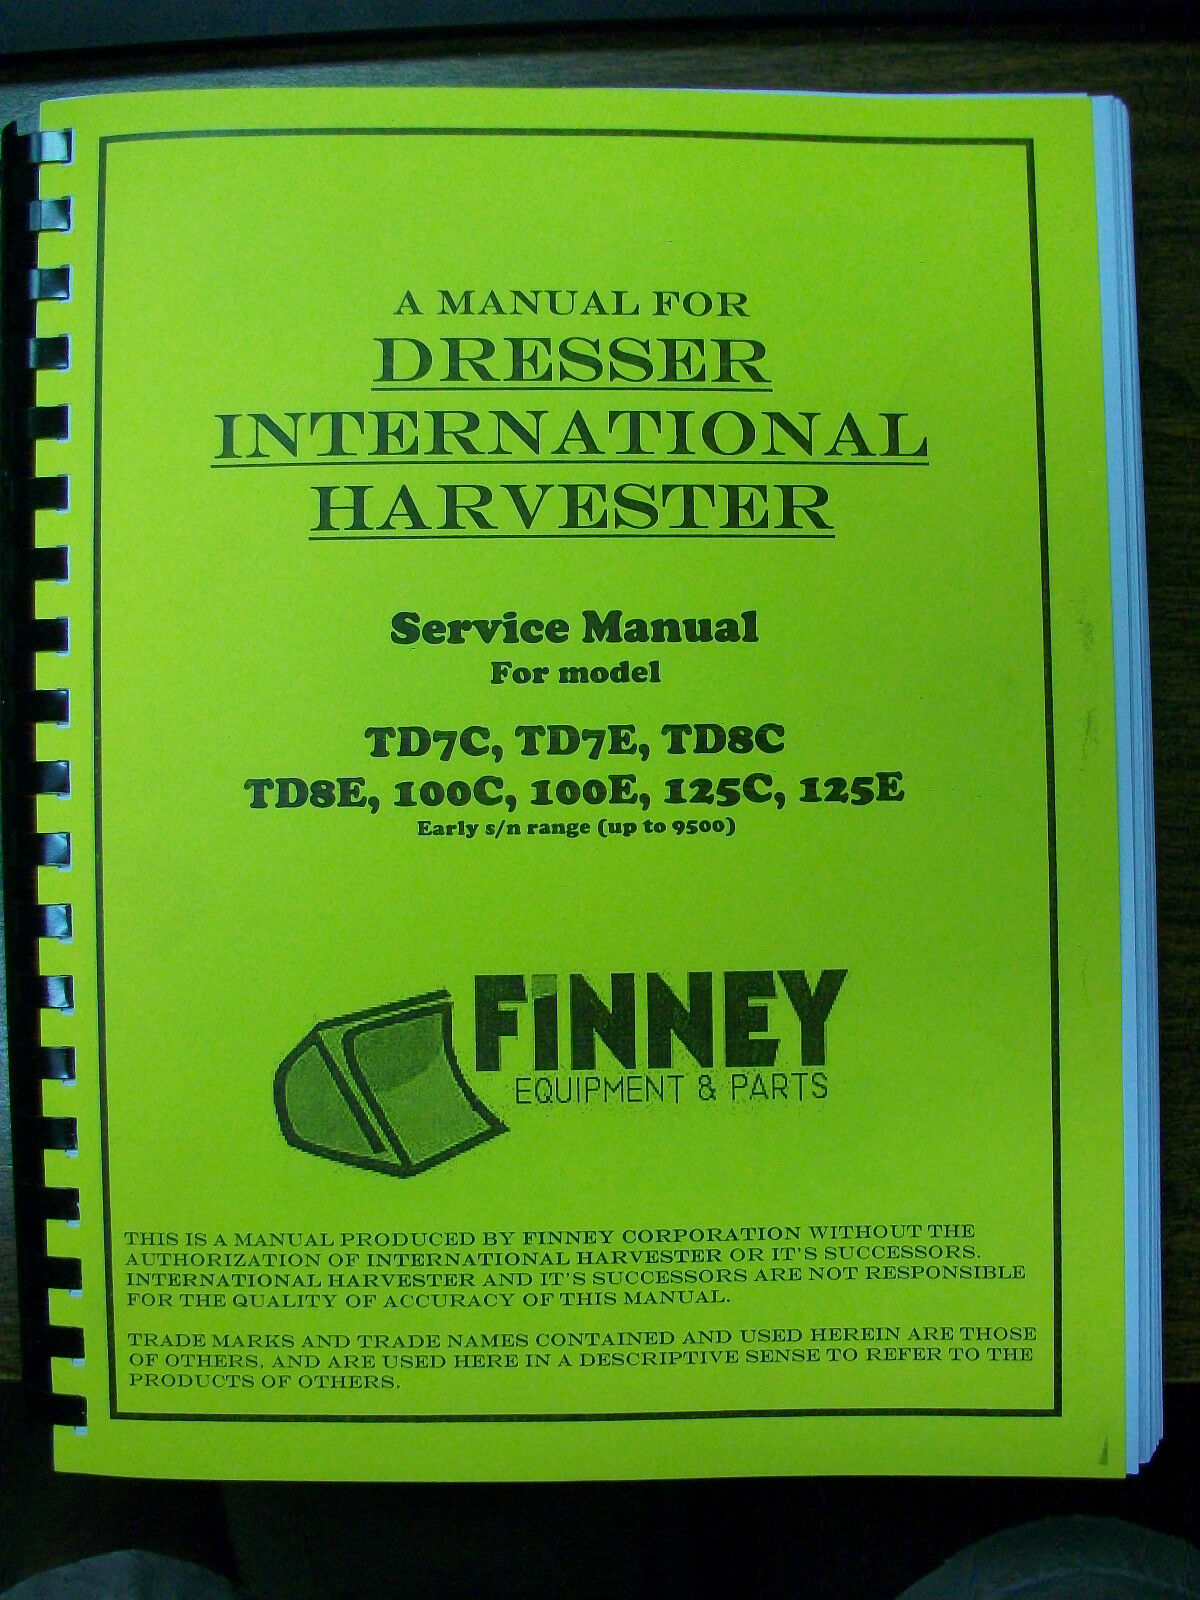 Dresser International TD7C TD7E TD8C TD8E 100C 100E 125C 125E Service Manual  IH